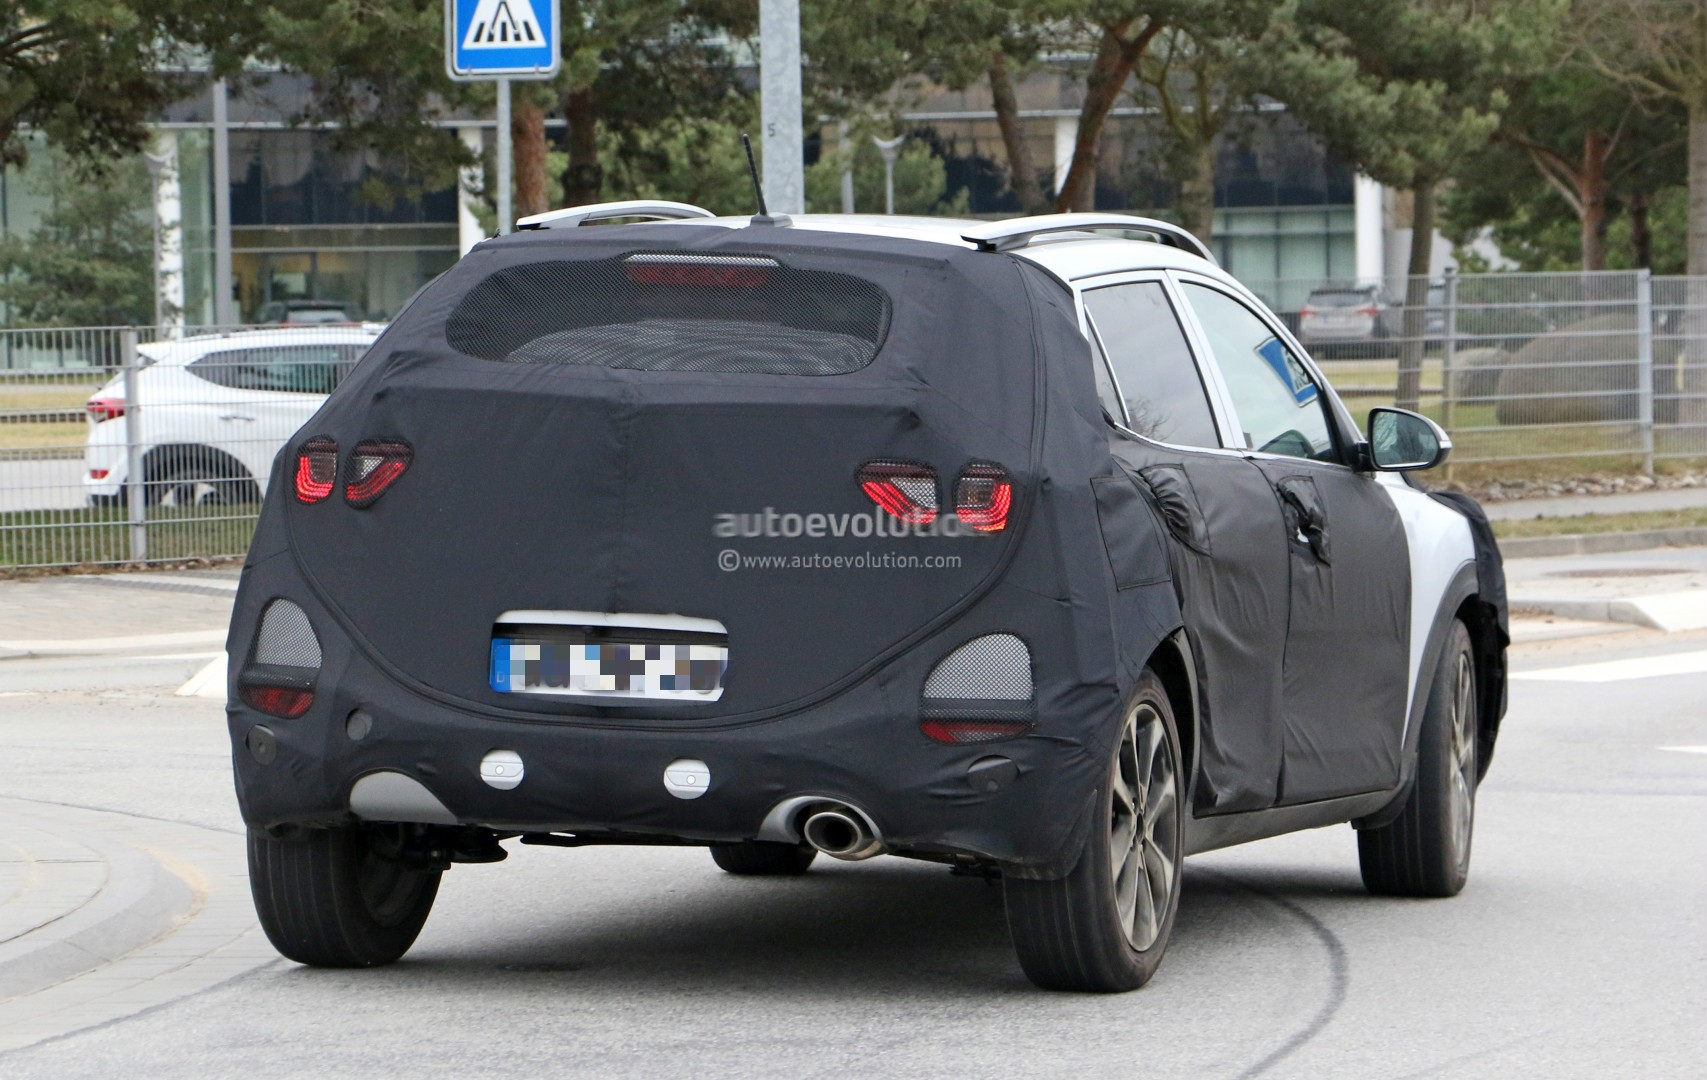 2017 - [Kia] Stonic 2018-kia-stonic-spied-up-close-in-germany-shows-sexy-production-lights_9